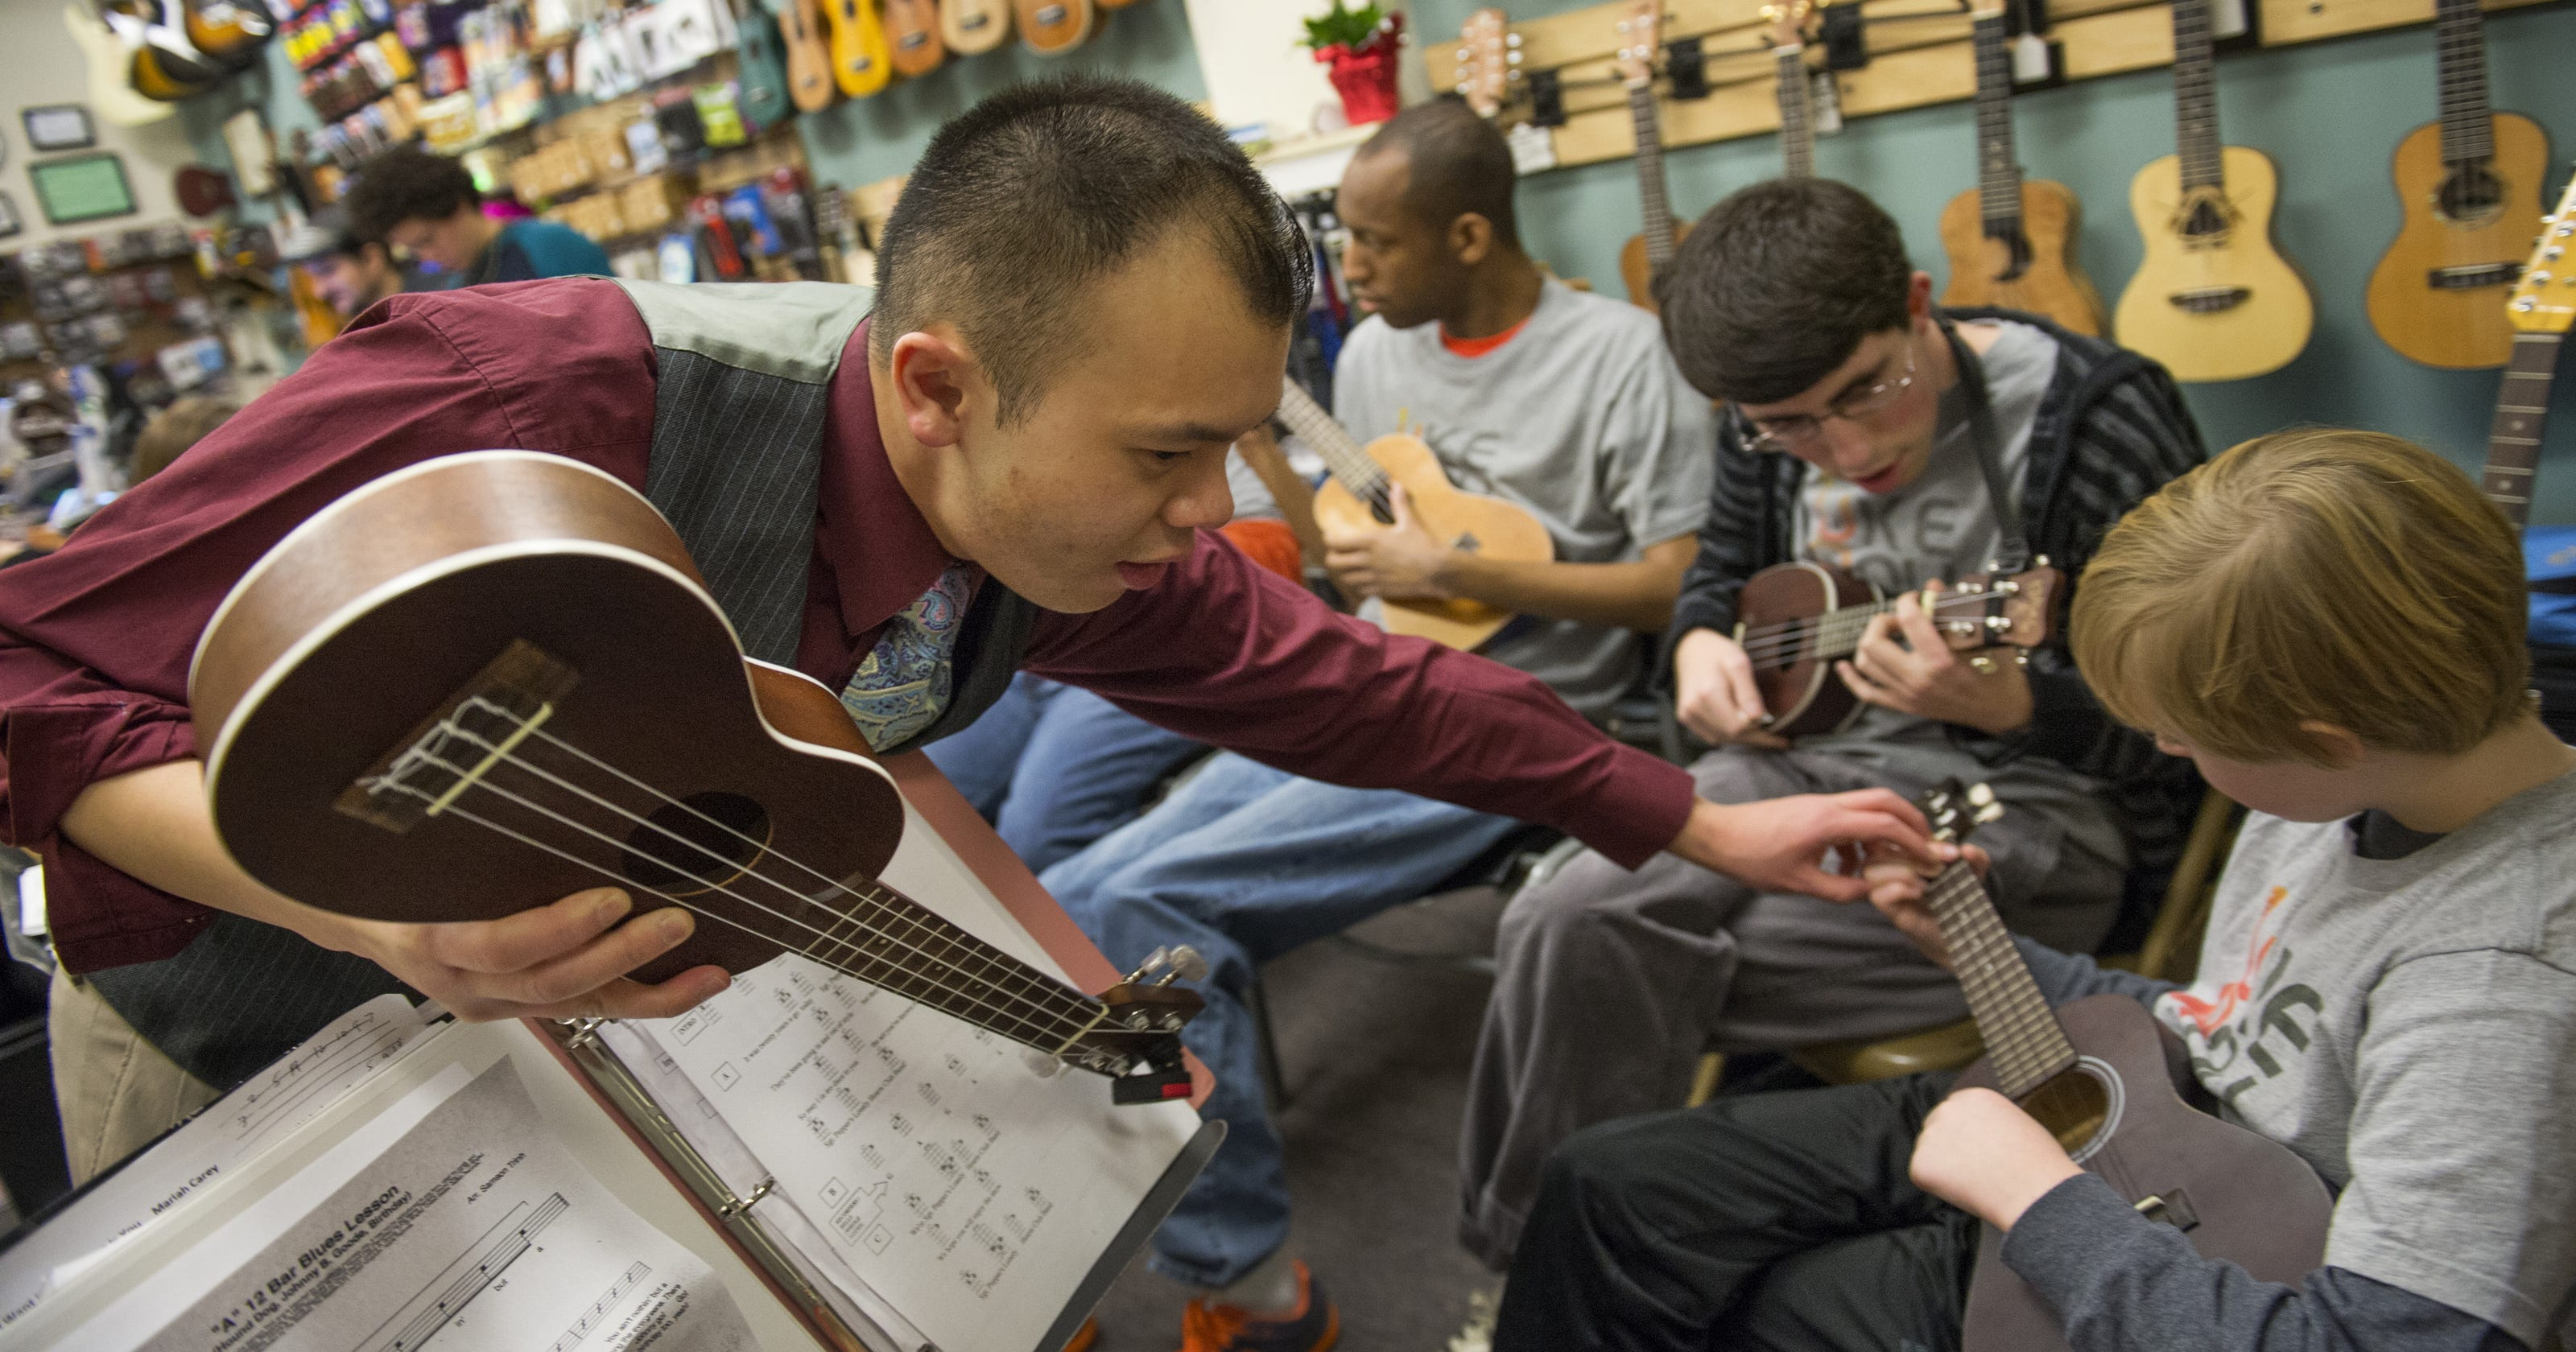 Ukuleles Tiptoeing Into Music Classrooms